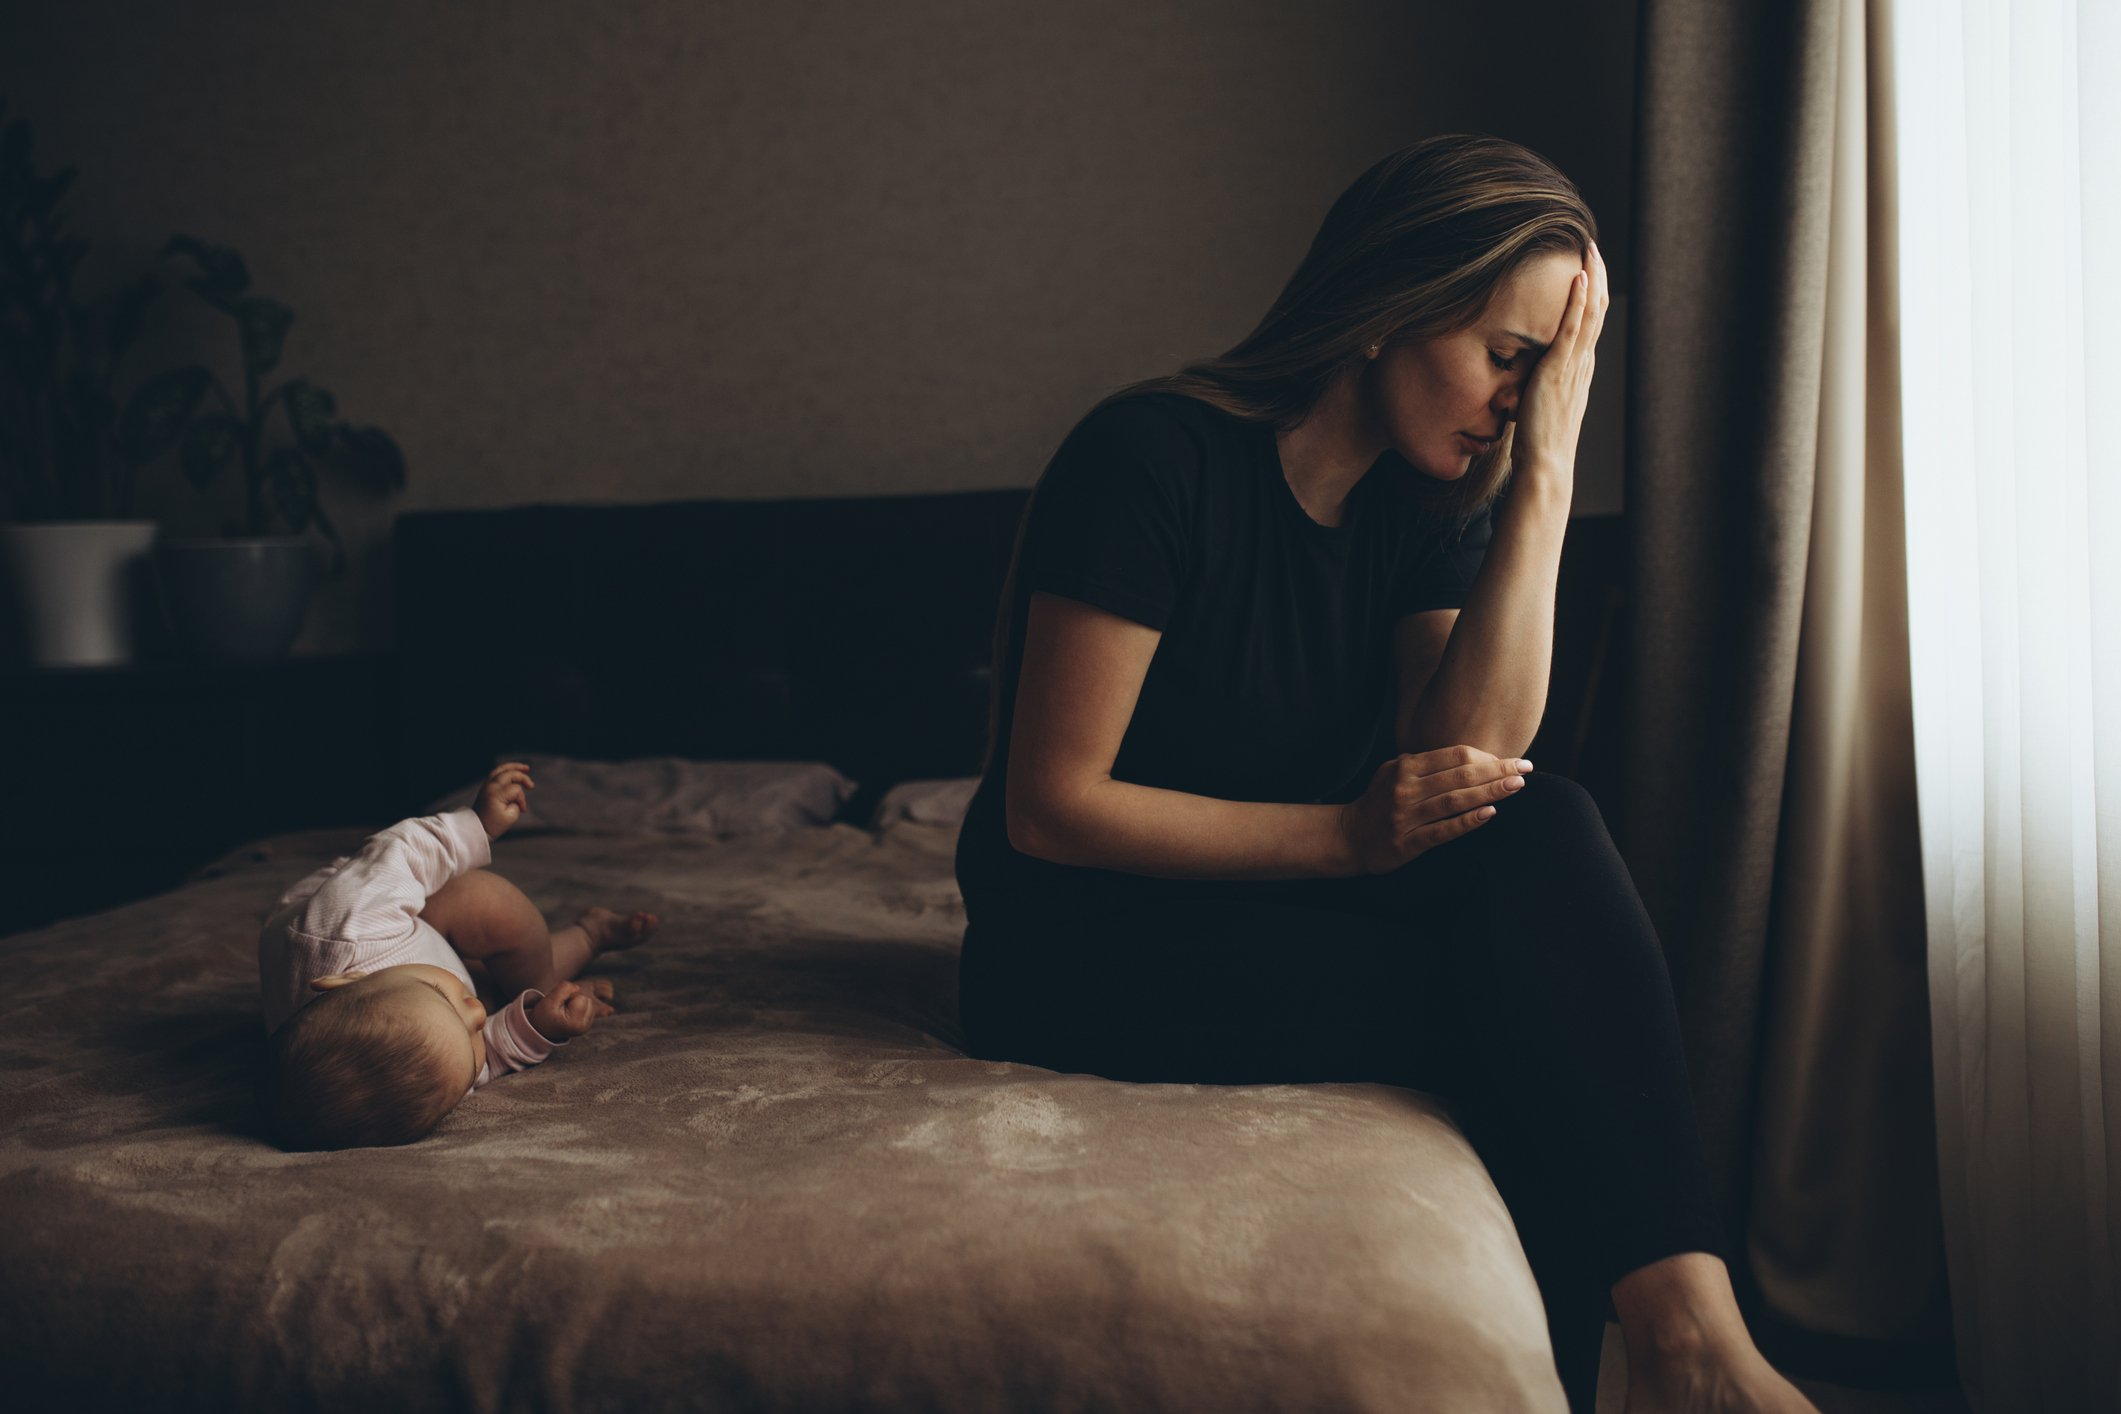 Distressed mother is worried about her baby | Photo: Getty Images